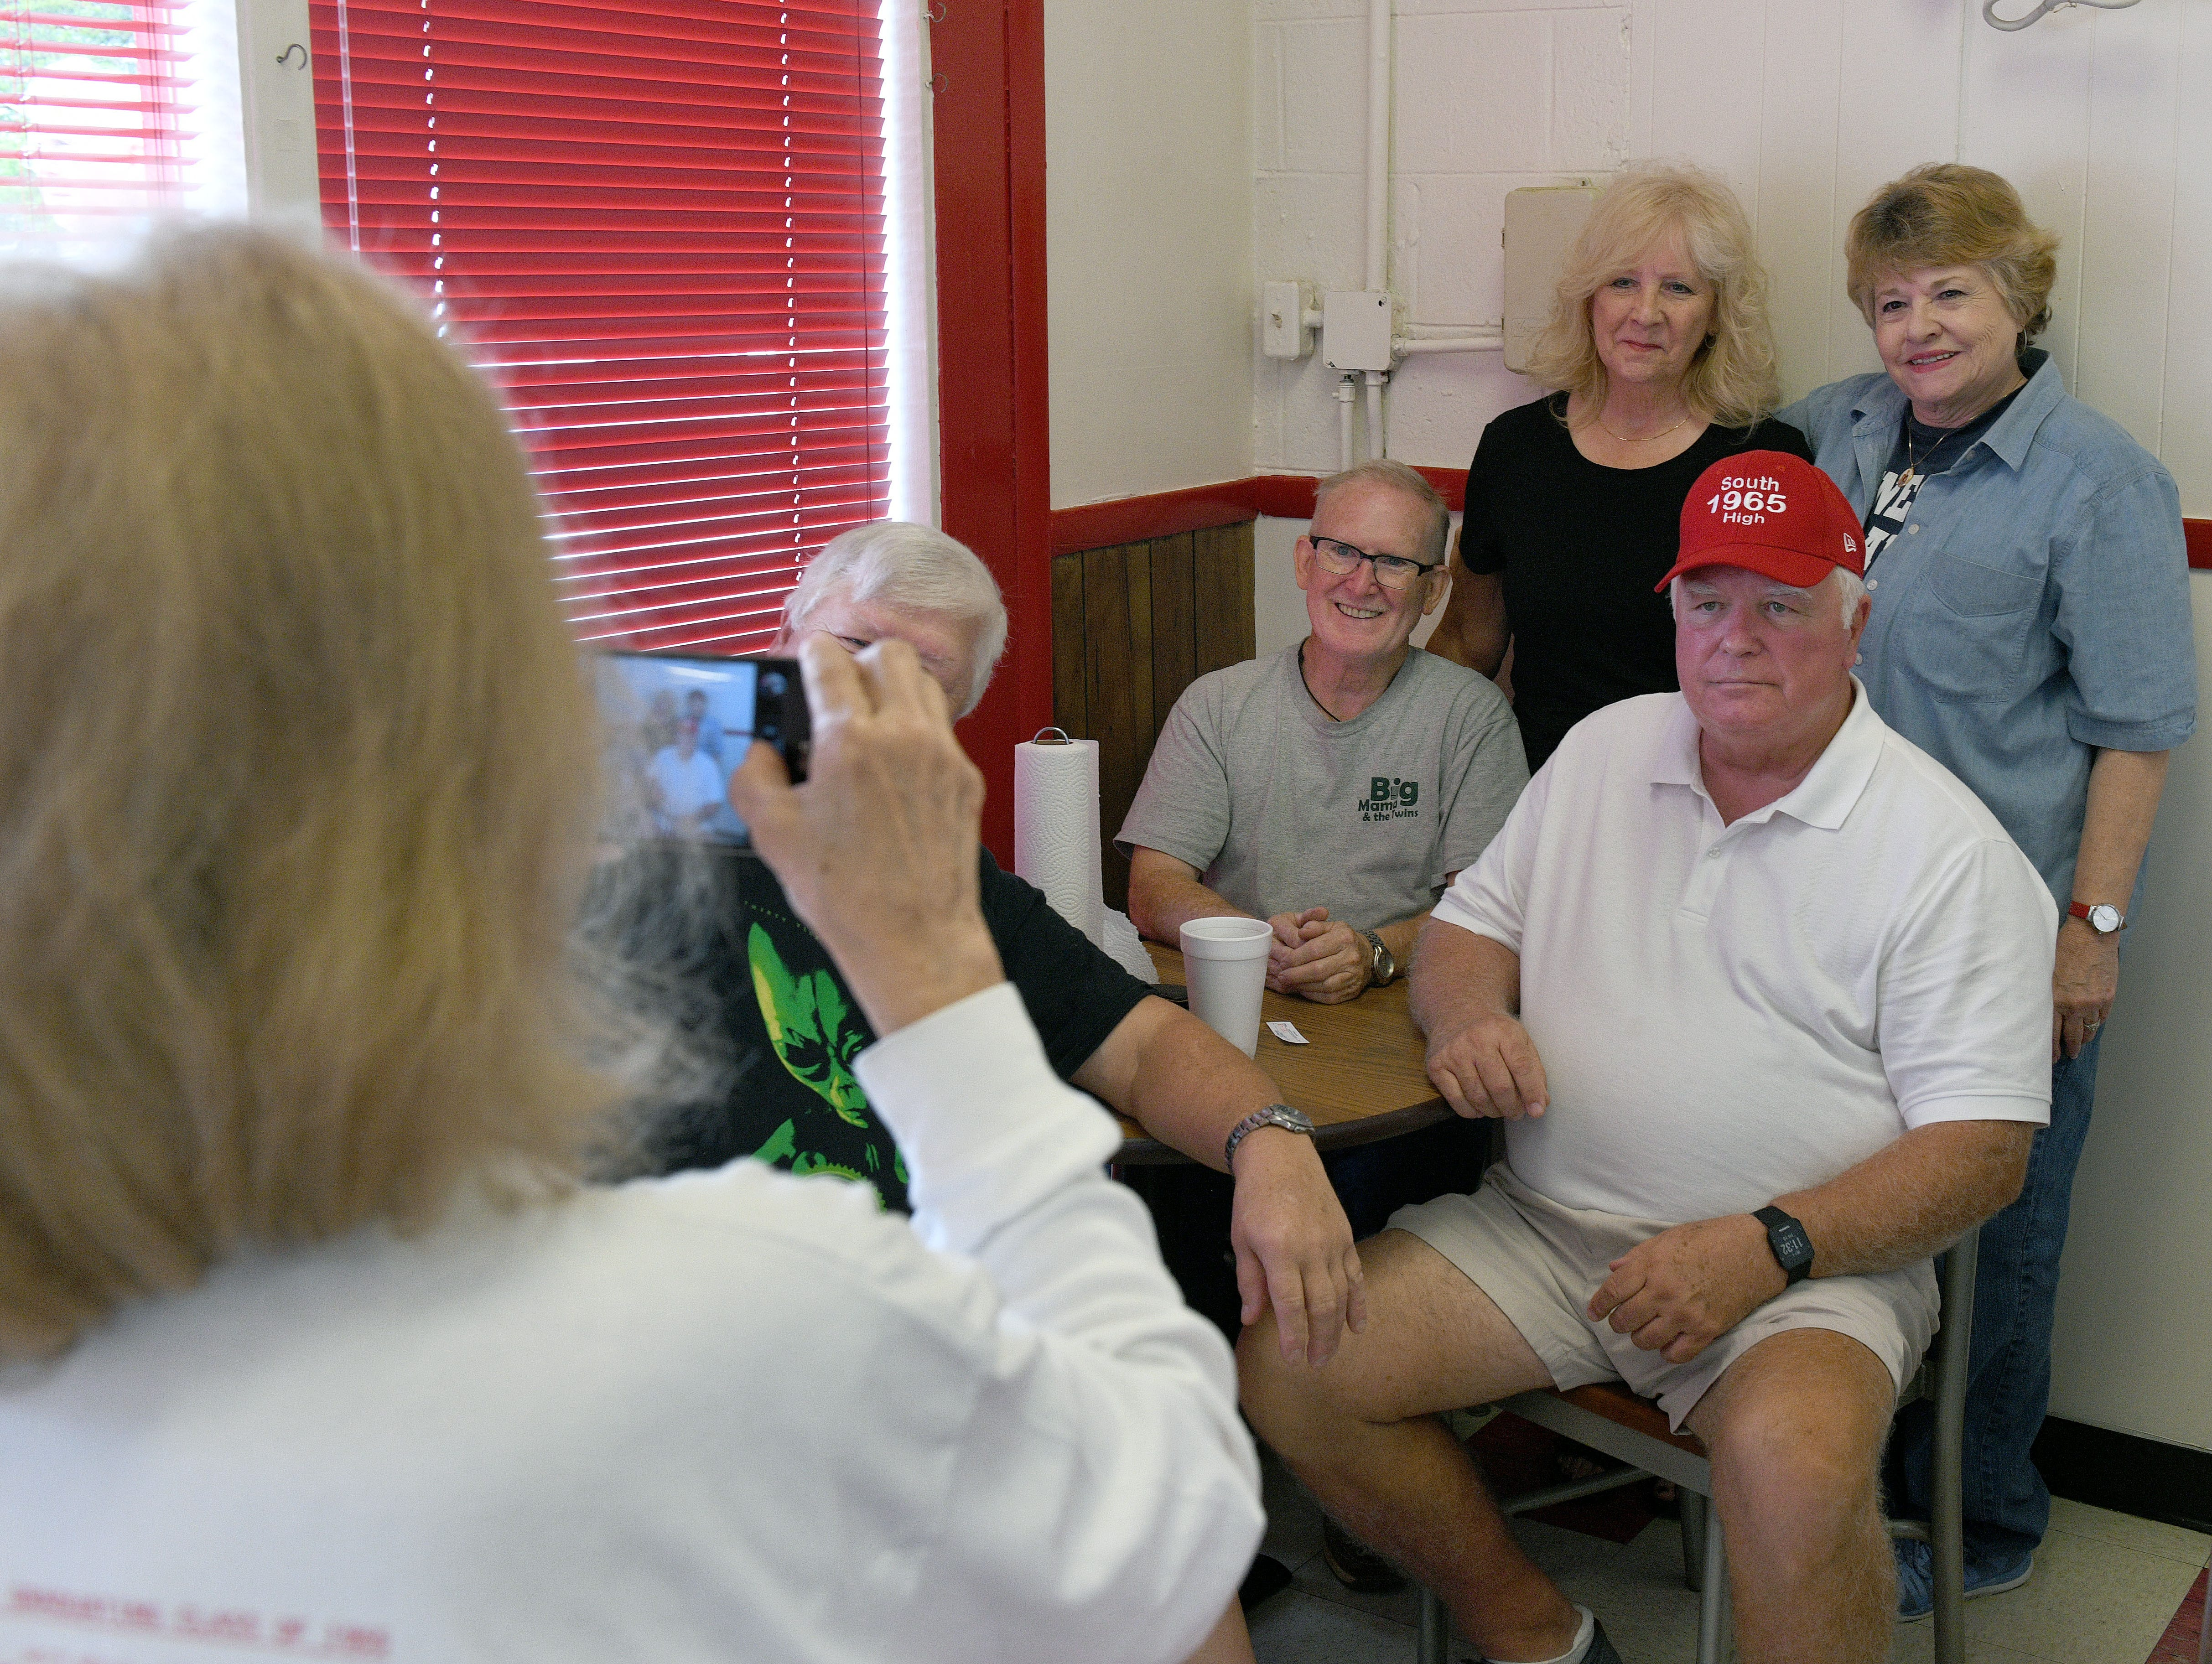 Members of the South High School Class of 1965 get a photo made as they gathered at the newly opened Scotts, in the old Kay's Ice Cream building,  Friday, August 10, 2018.